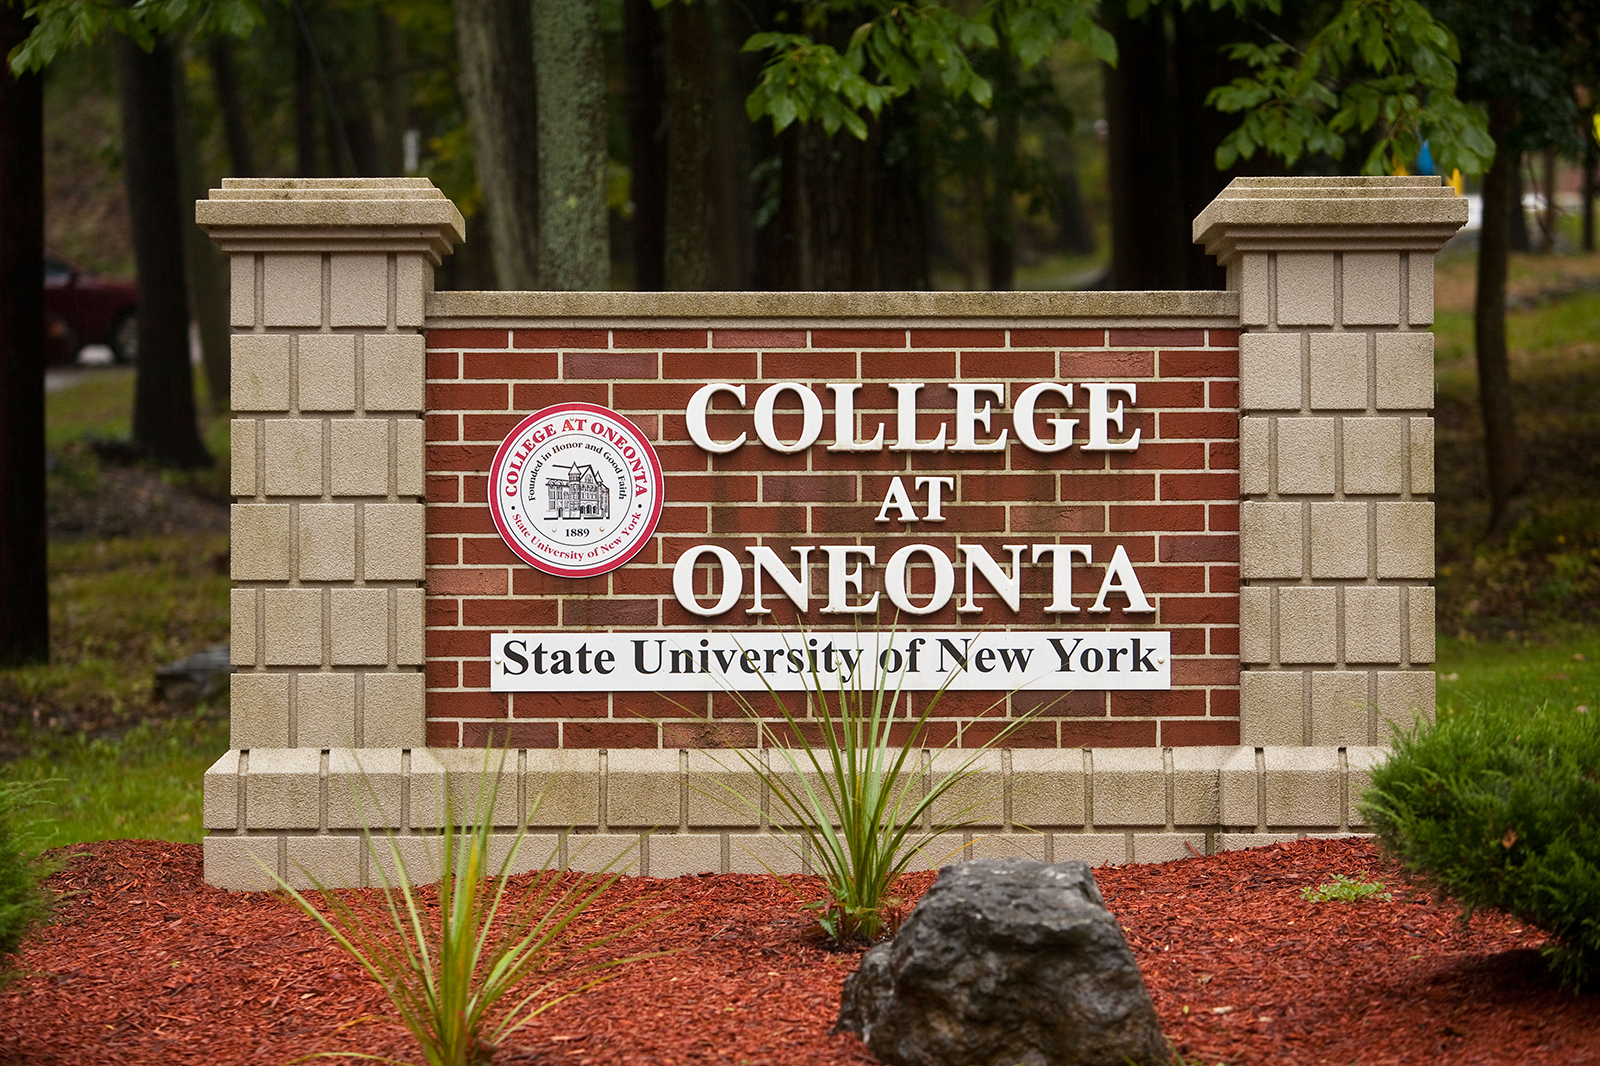 State University of New York College at Oneonta.